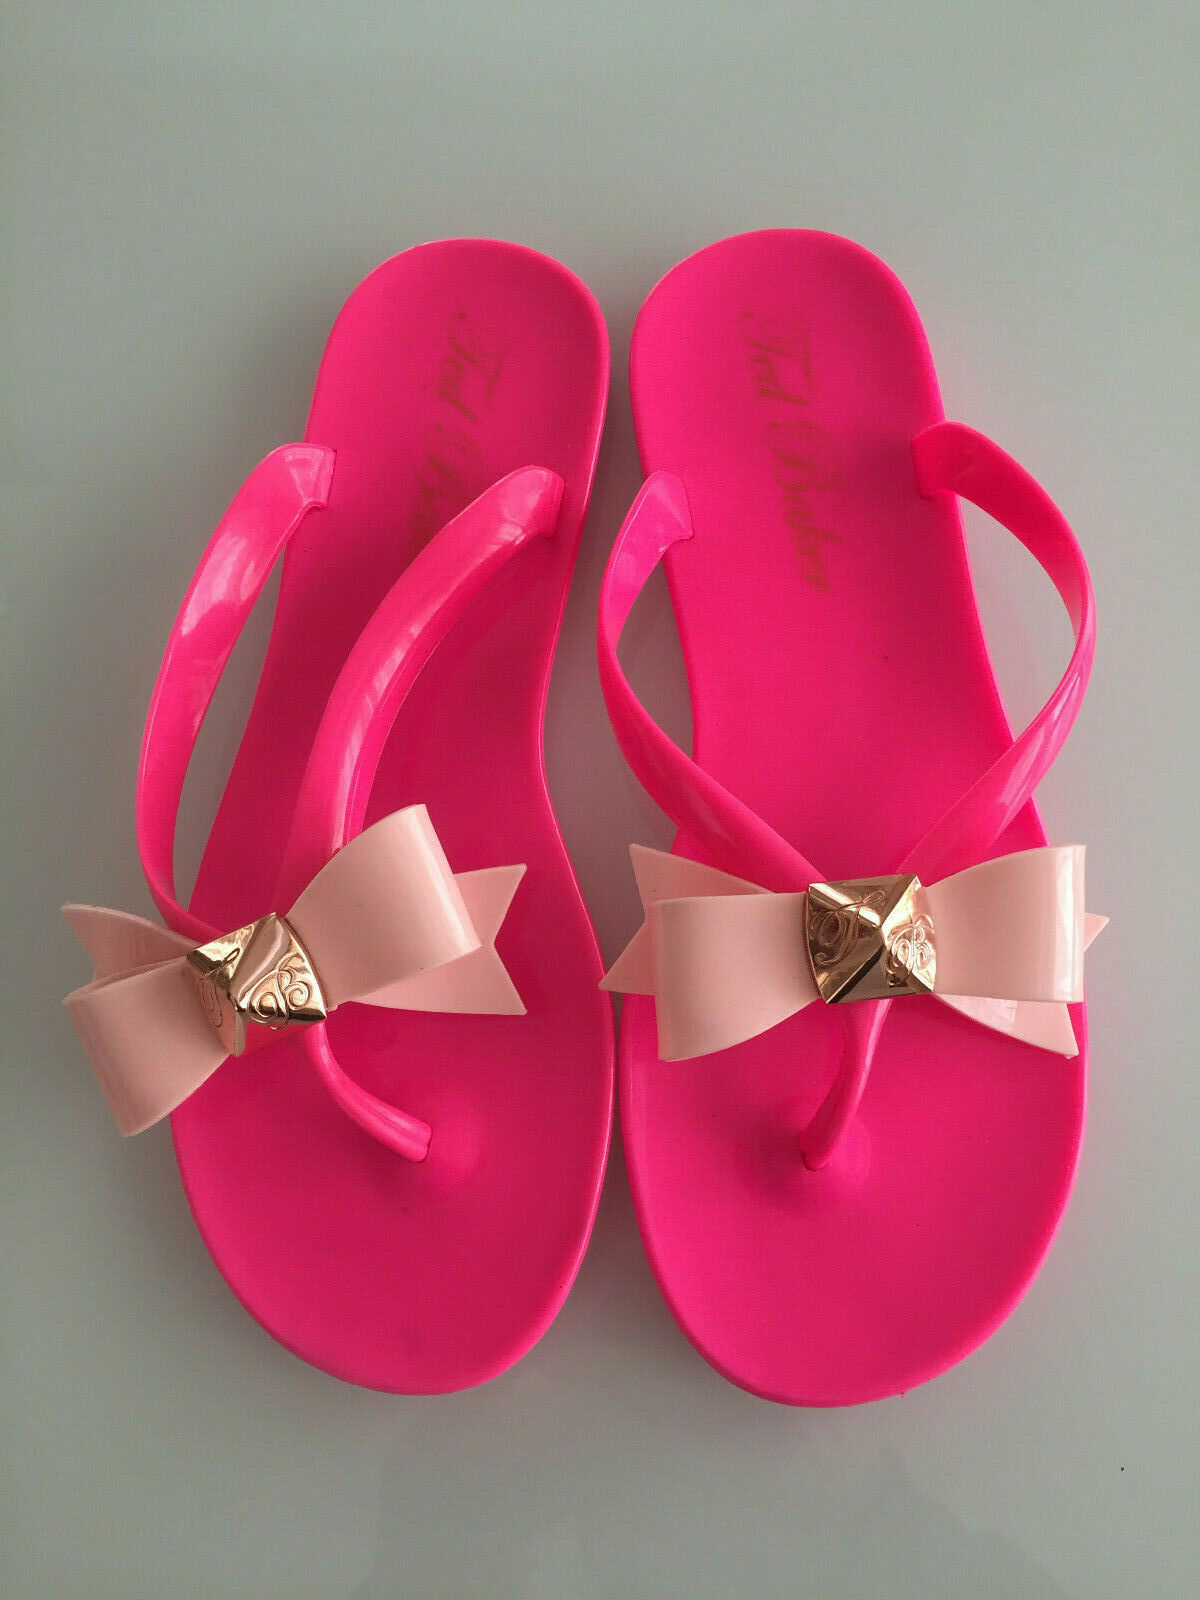 00f8bc06bab TED BAKER BRIGHT PINK BOW JELLY SANDALS SIZE UK 4 37 NEW POLEE ...